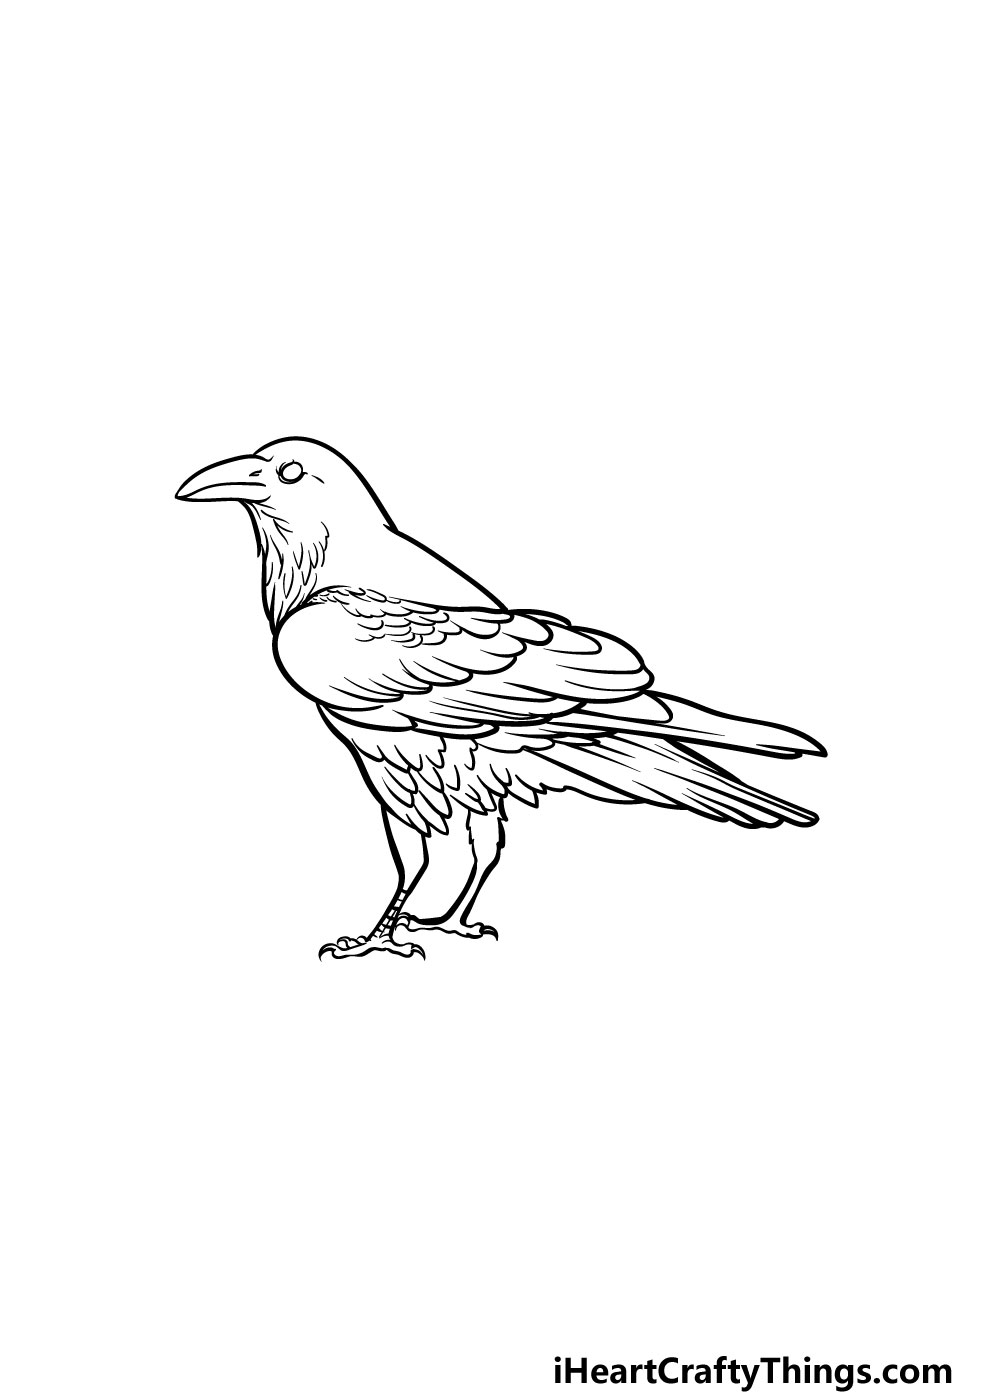 drawing a crow step 5